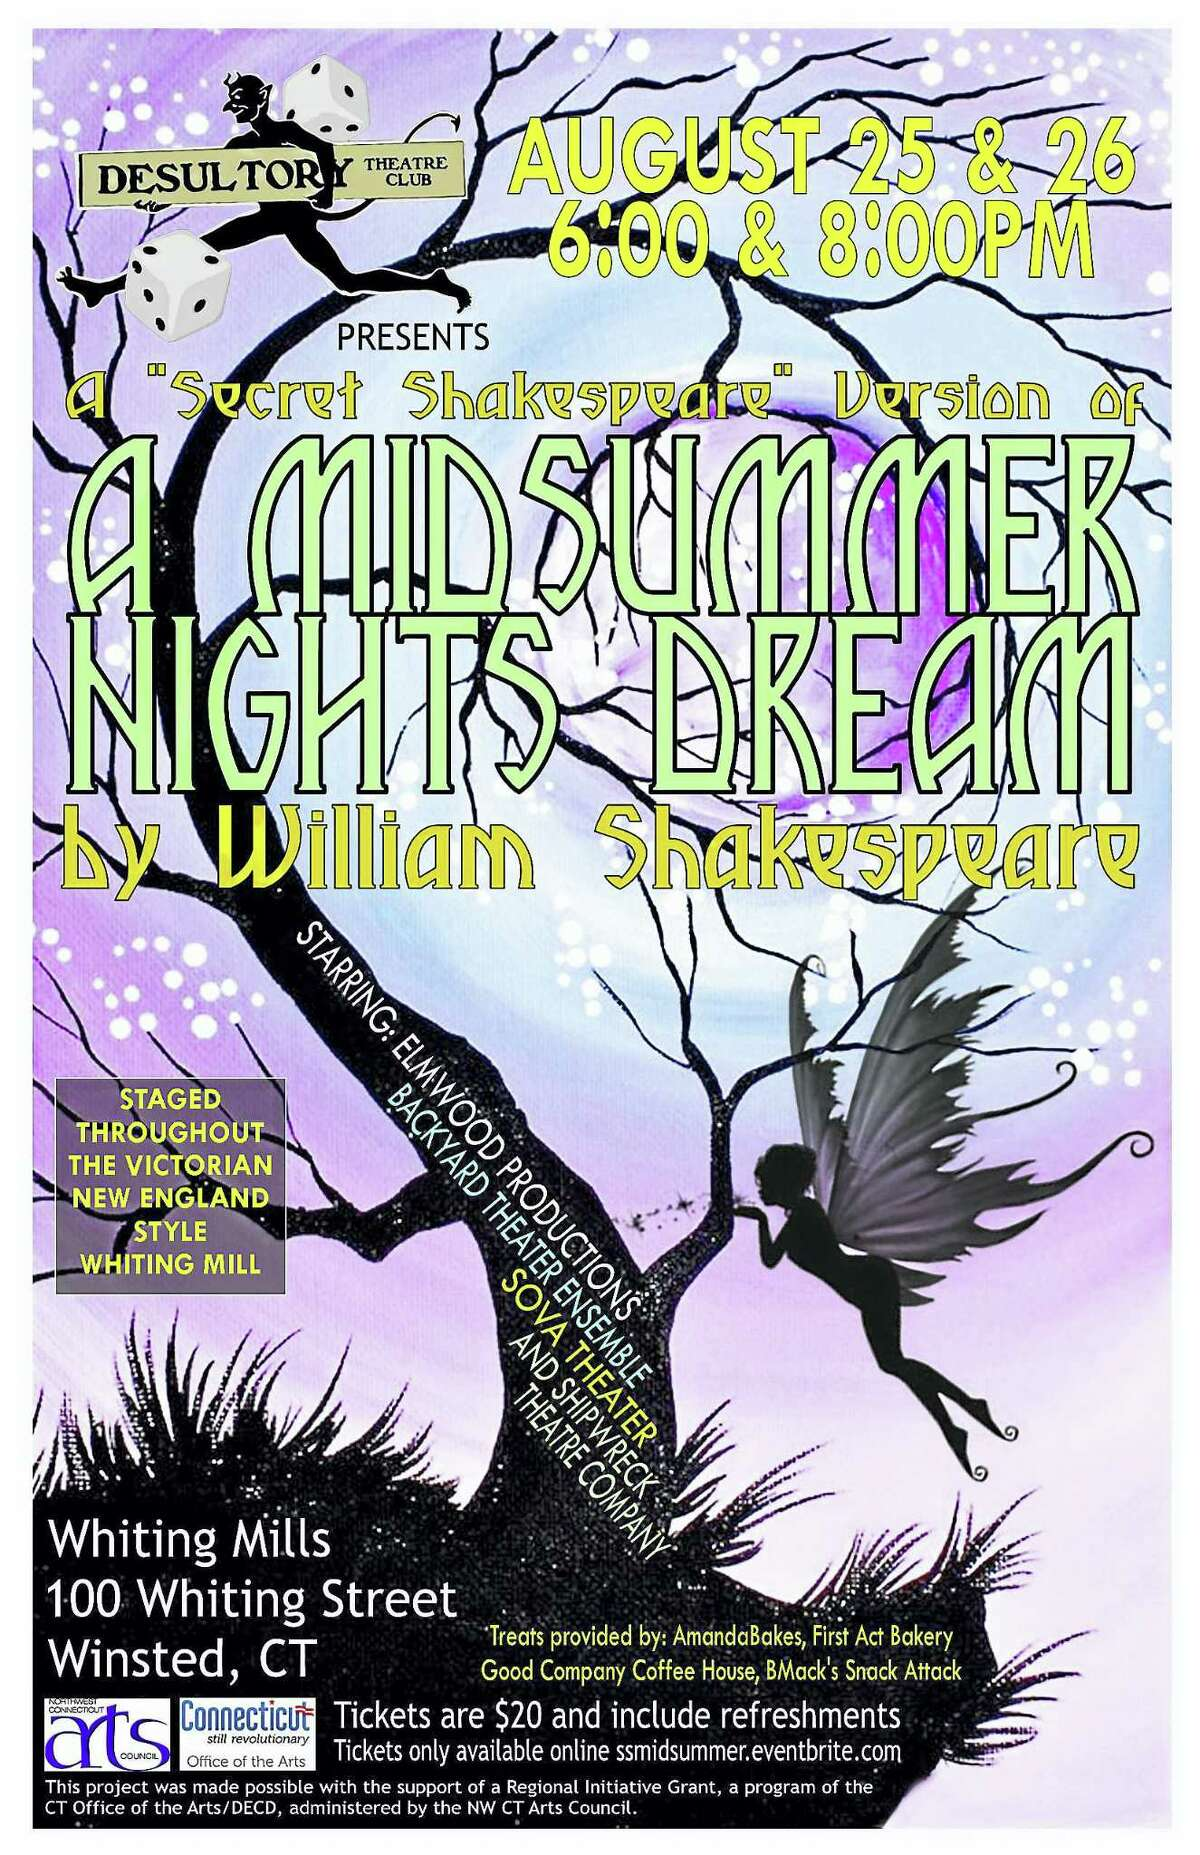 """The Desultory Theatre Club will present a """"Secret Shakespeare"""" production of the romantic comedy, """"A Midsummer Night's Dream"""" on Friday and Saturday, Aug. 25-26 at 6 p.m. and 8 p.m., at Whiting Mills Artist Studios, 100 Whiting Street in Winsted."""